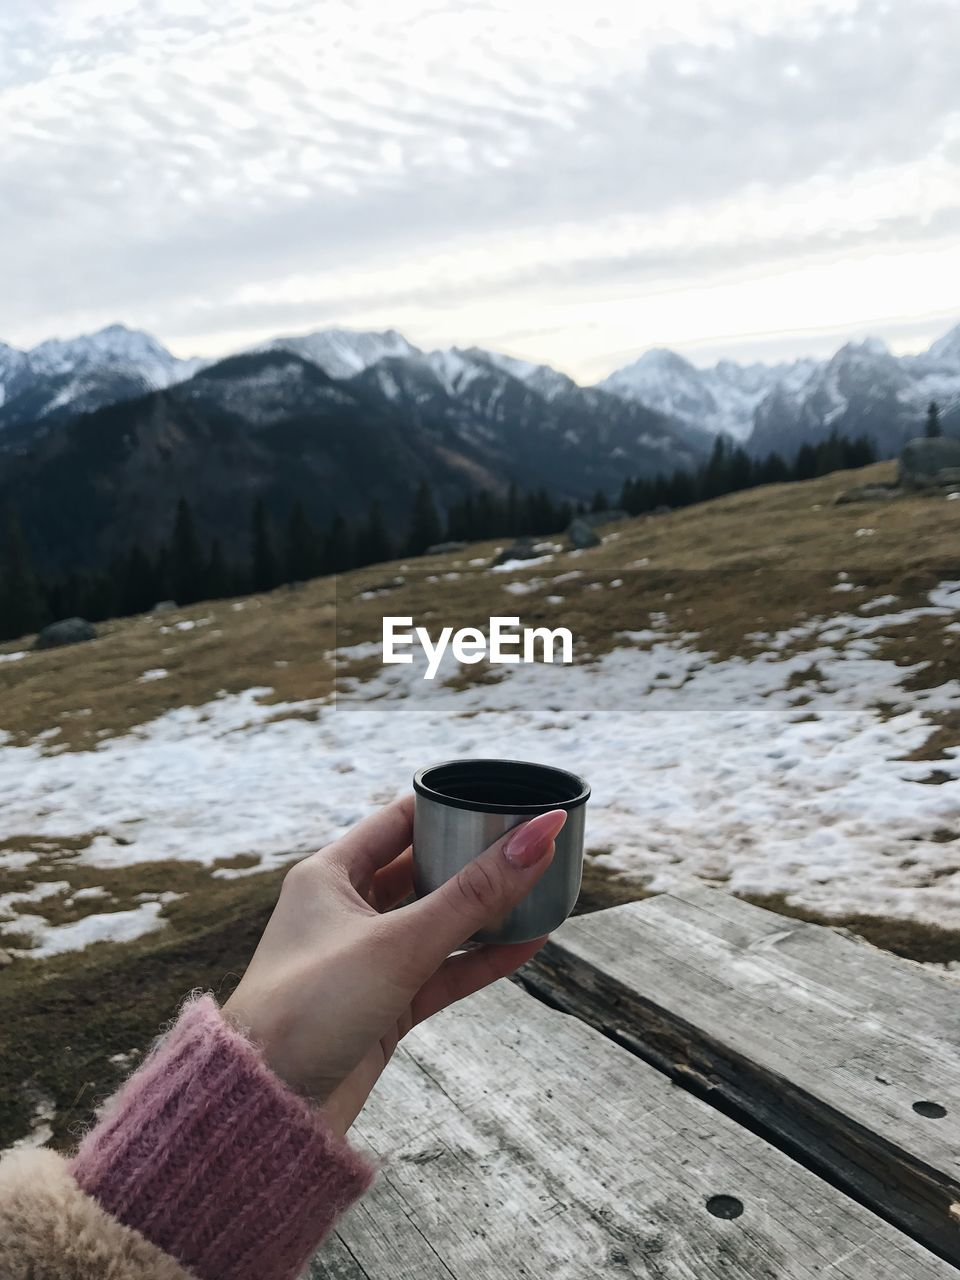 PERSON HAND ON SNOW COVERED MOUNTAIN